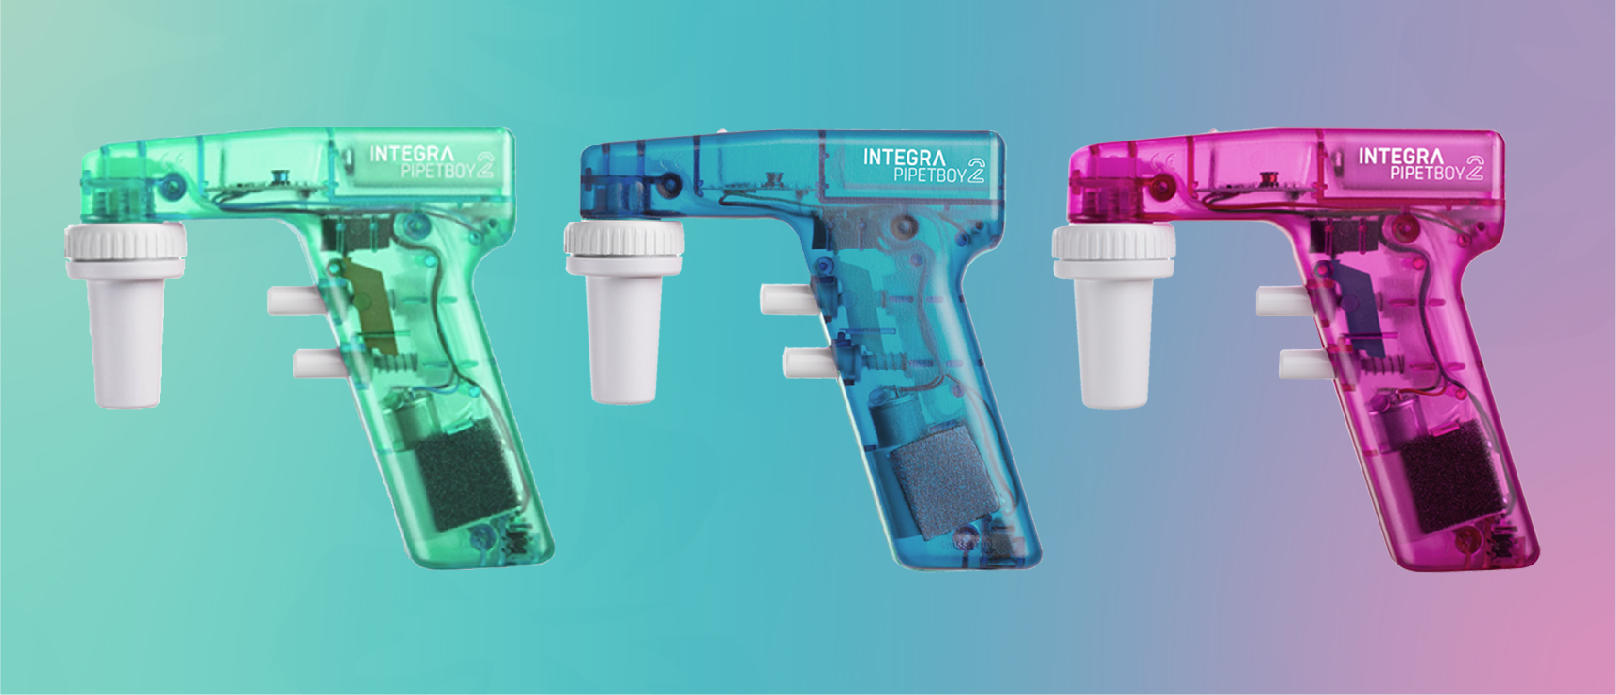 Three PIPETBOY acu 2's in the new LIMITED EDITION SUMMER COLORS